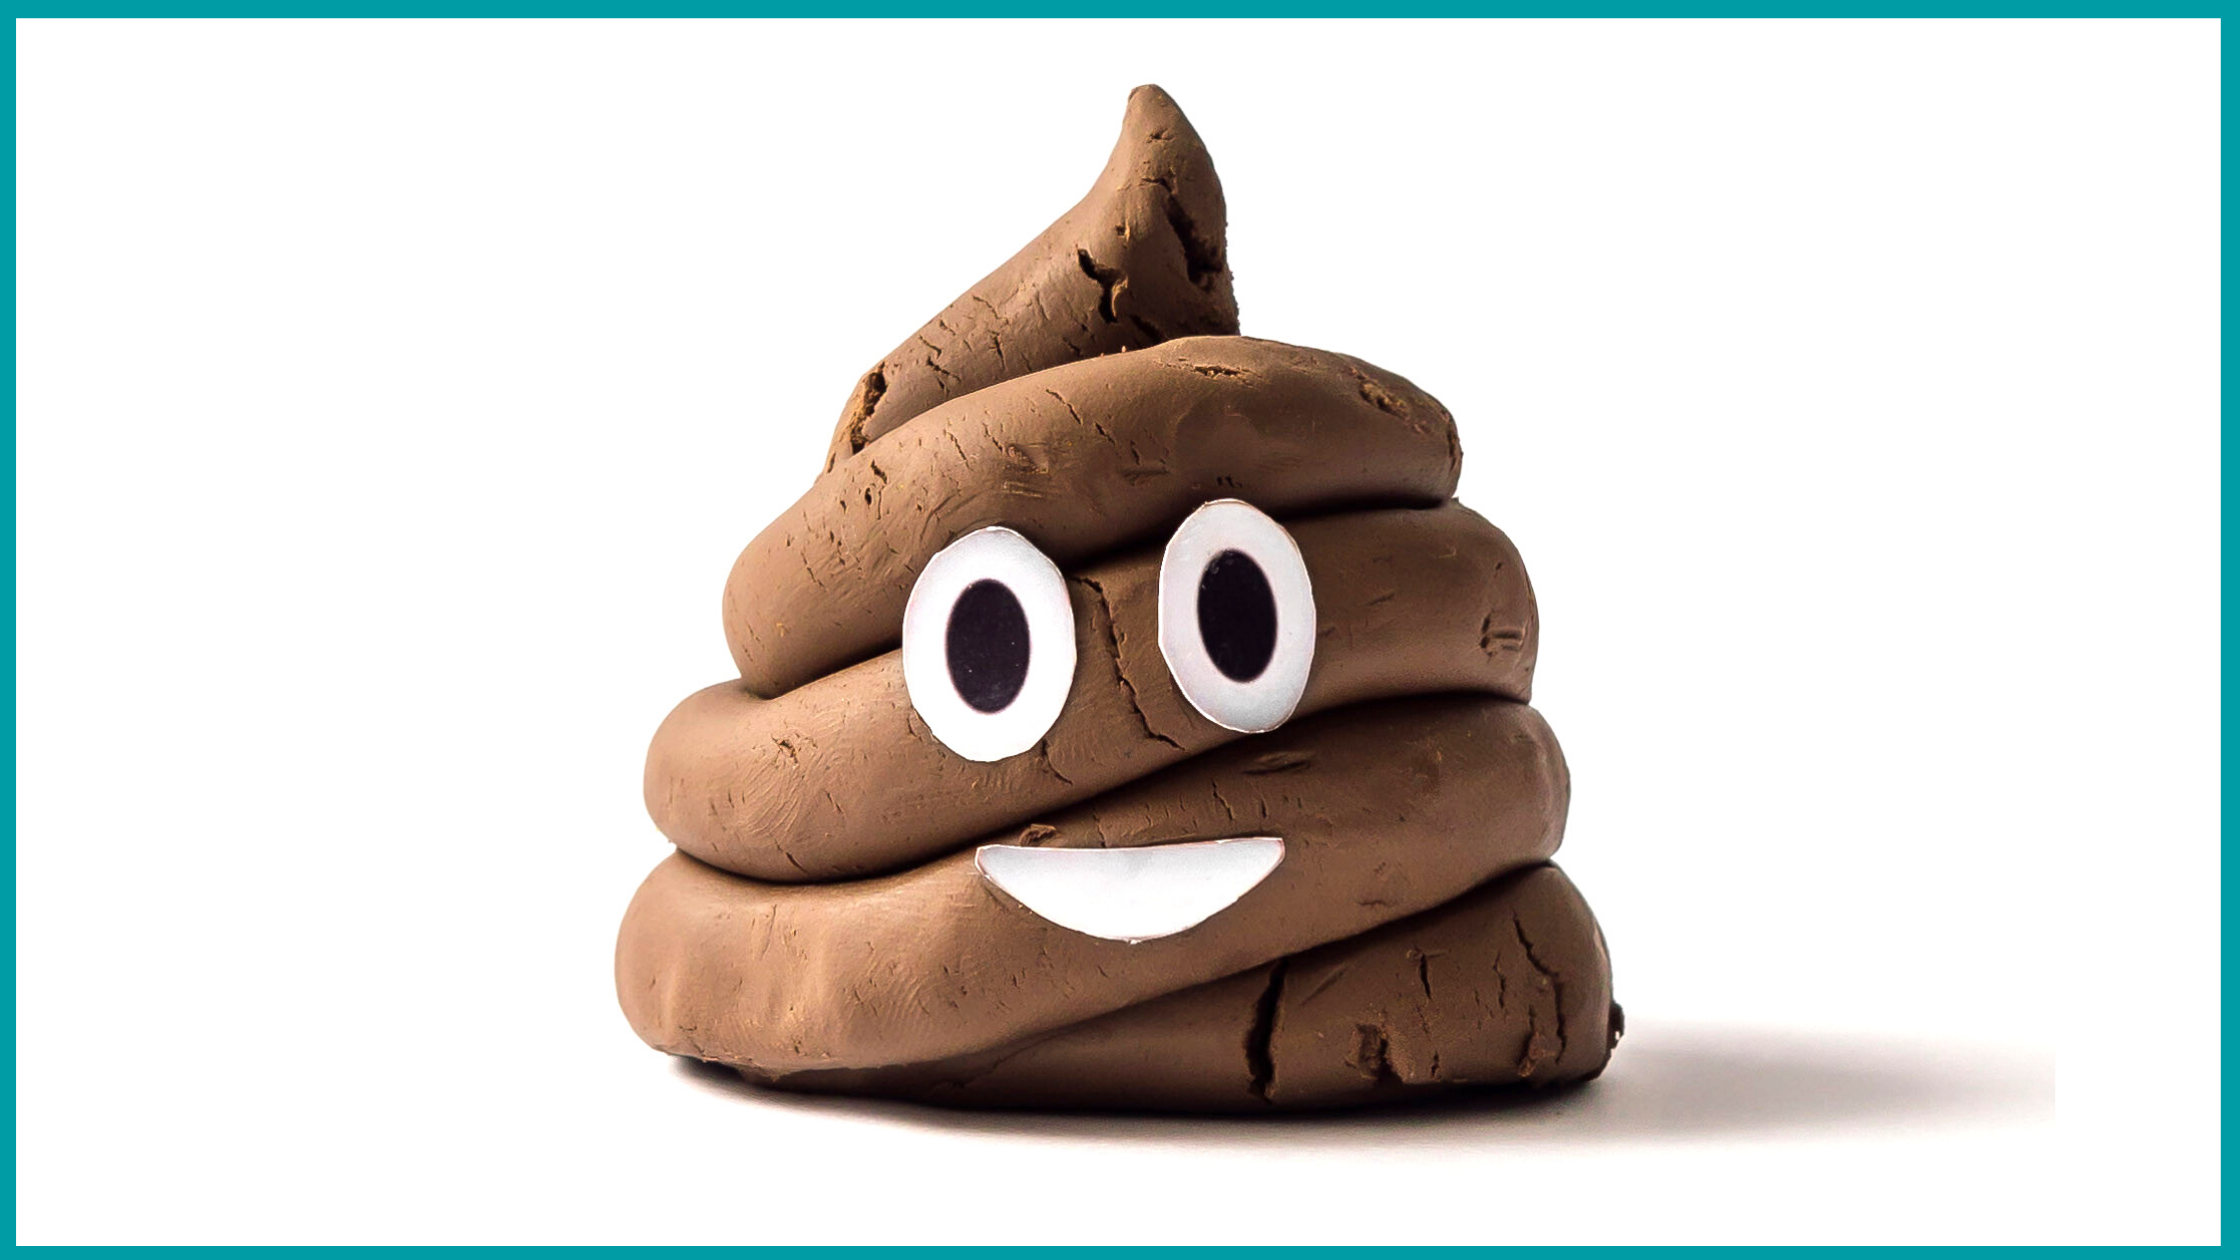 TOP 5 HACKS TO ELIMINATE POOP LIKE A CHAMPION